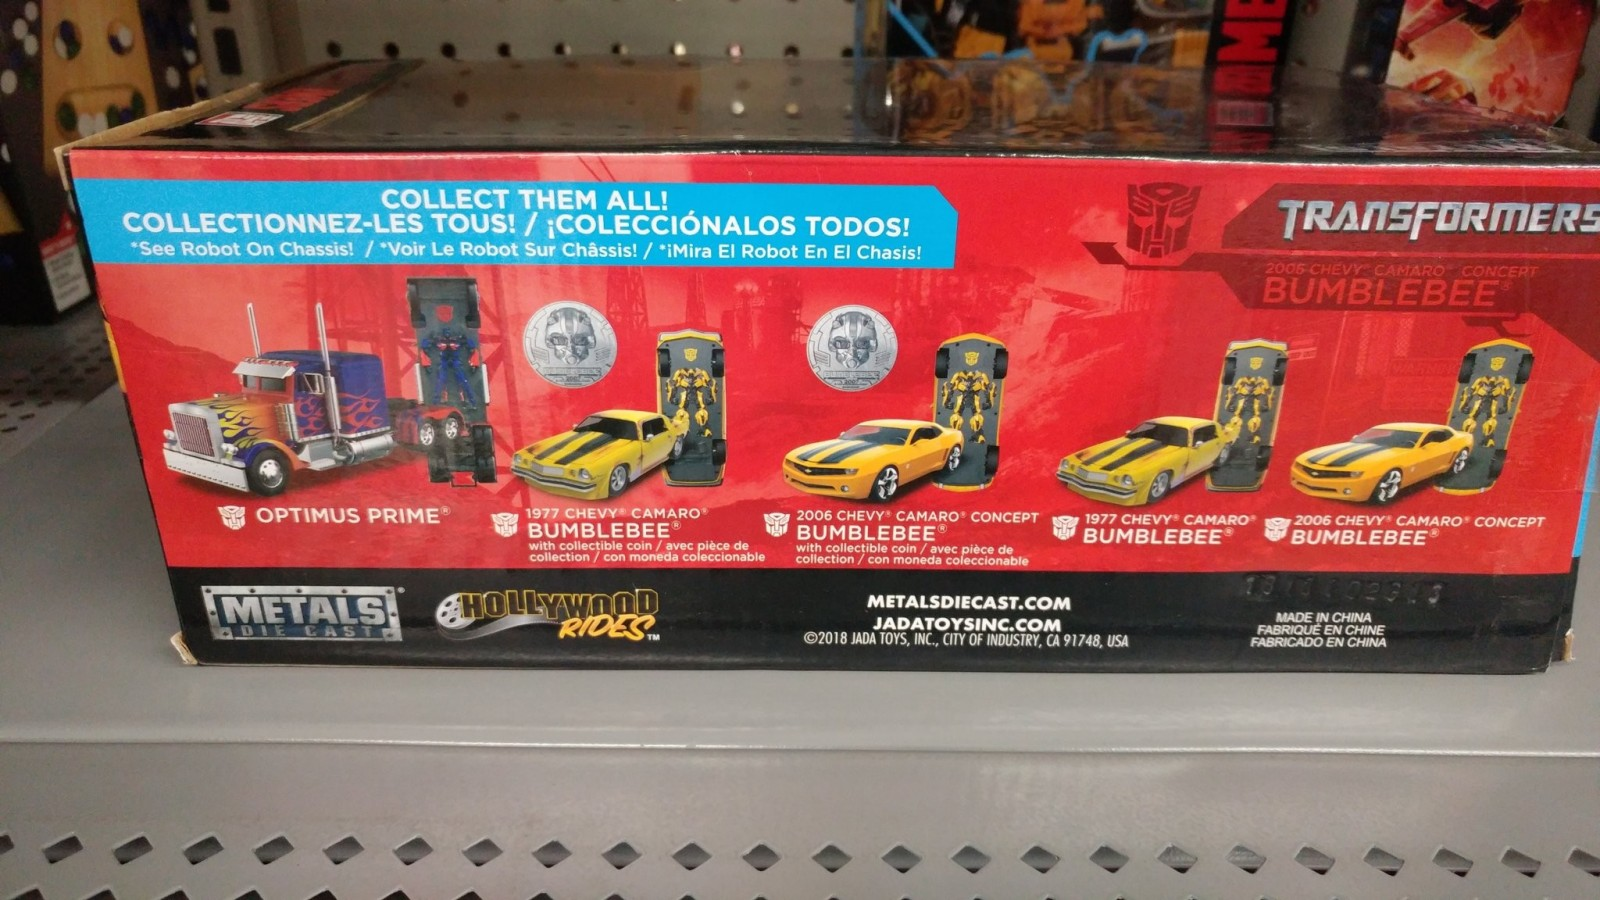 Transformers News: Jada Hollywood Rides 1:24 Transformers 2007 Camaro Concept Bumblebee Found in US